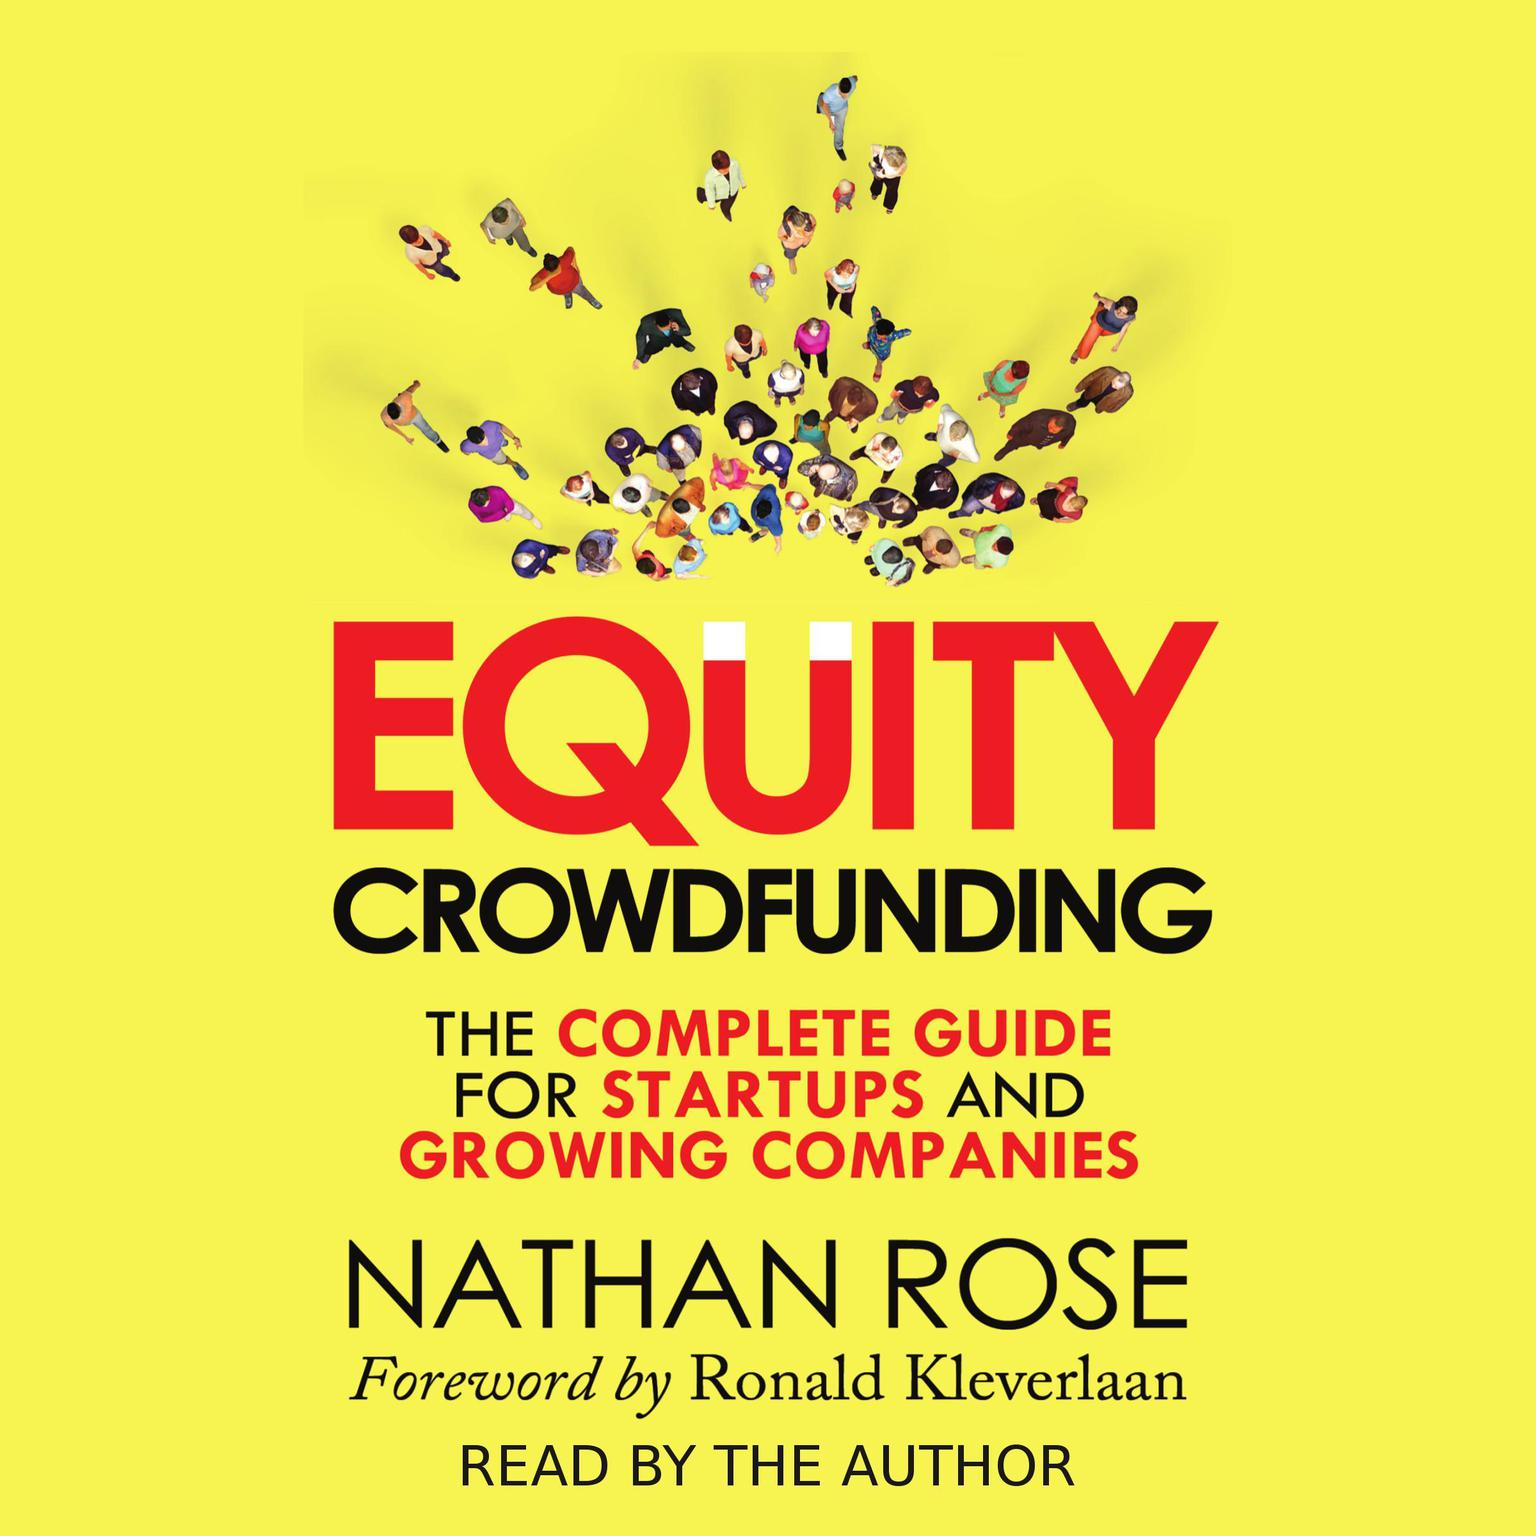 Printable Equity Crowdfunding: The Complete Guide For Startups And Growing Companies: The Complete Guide For Startups And Growing Companies Audiobook Cover Art